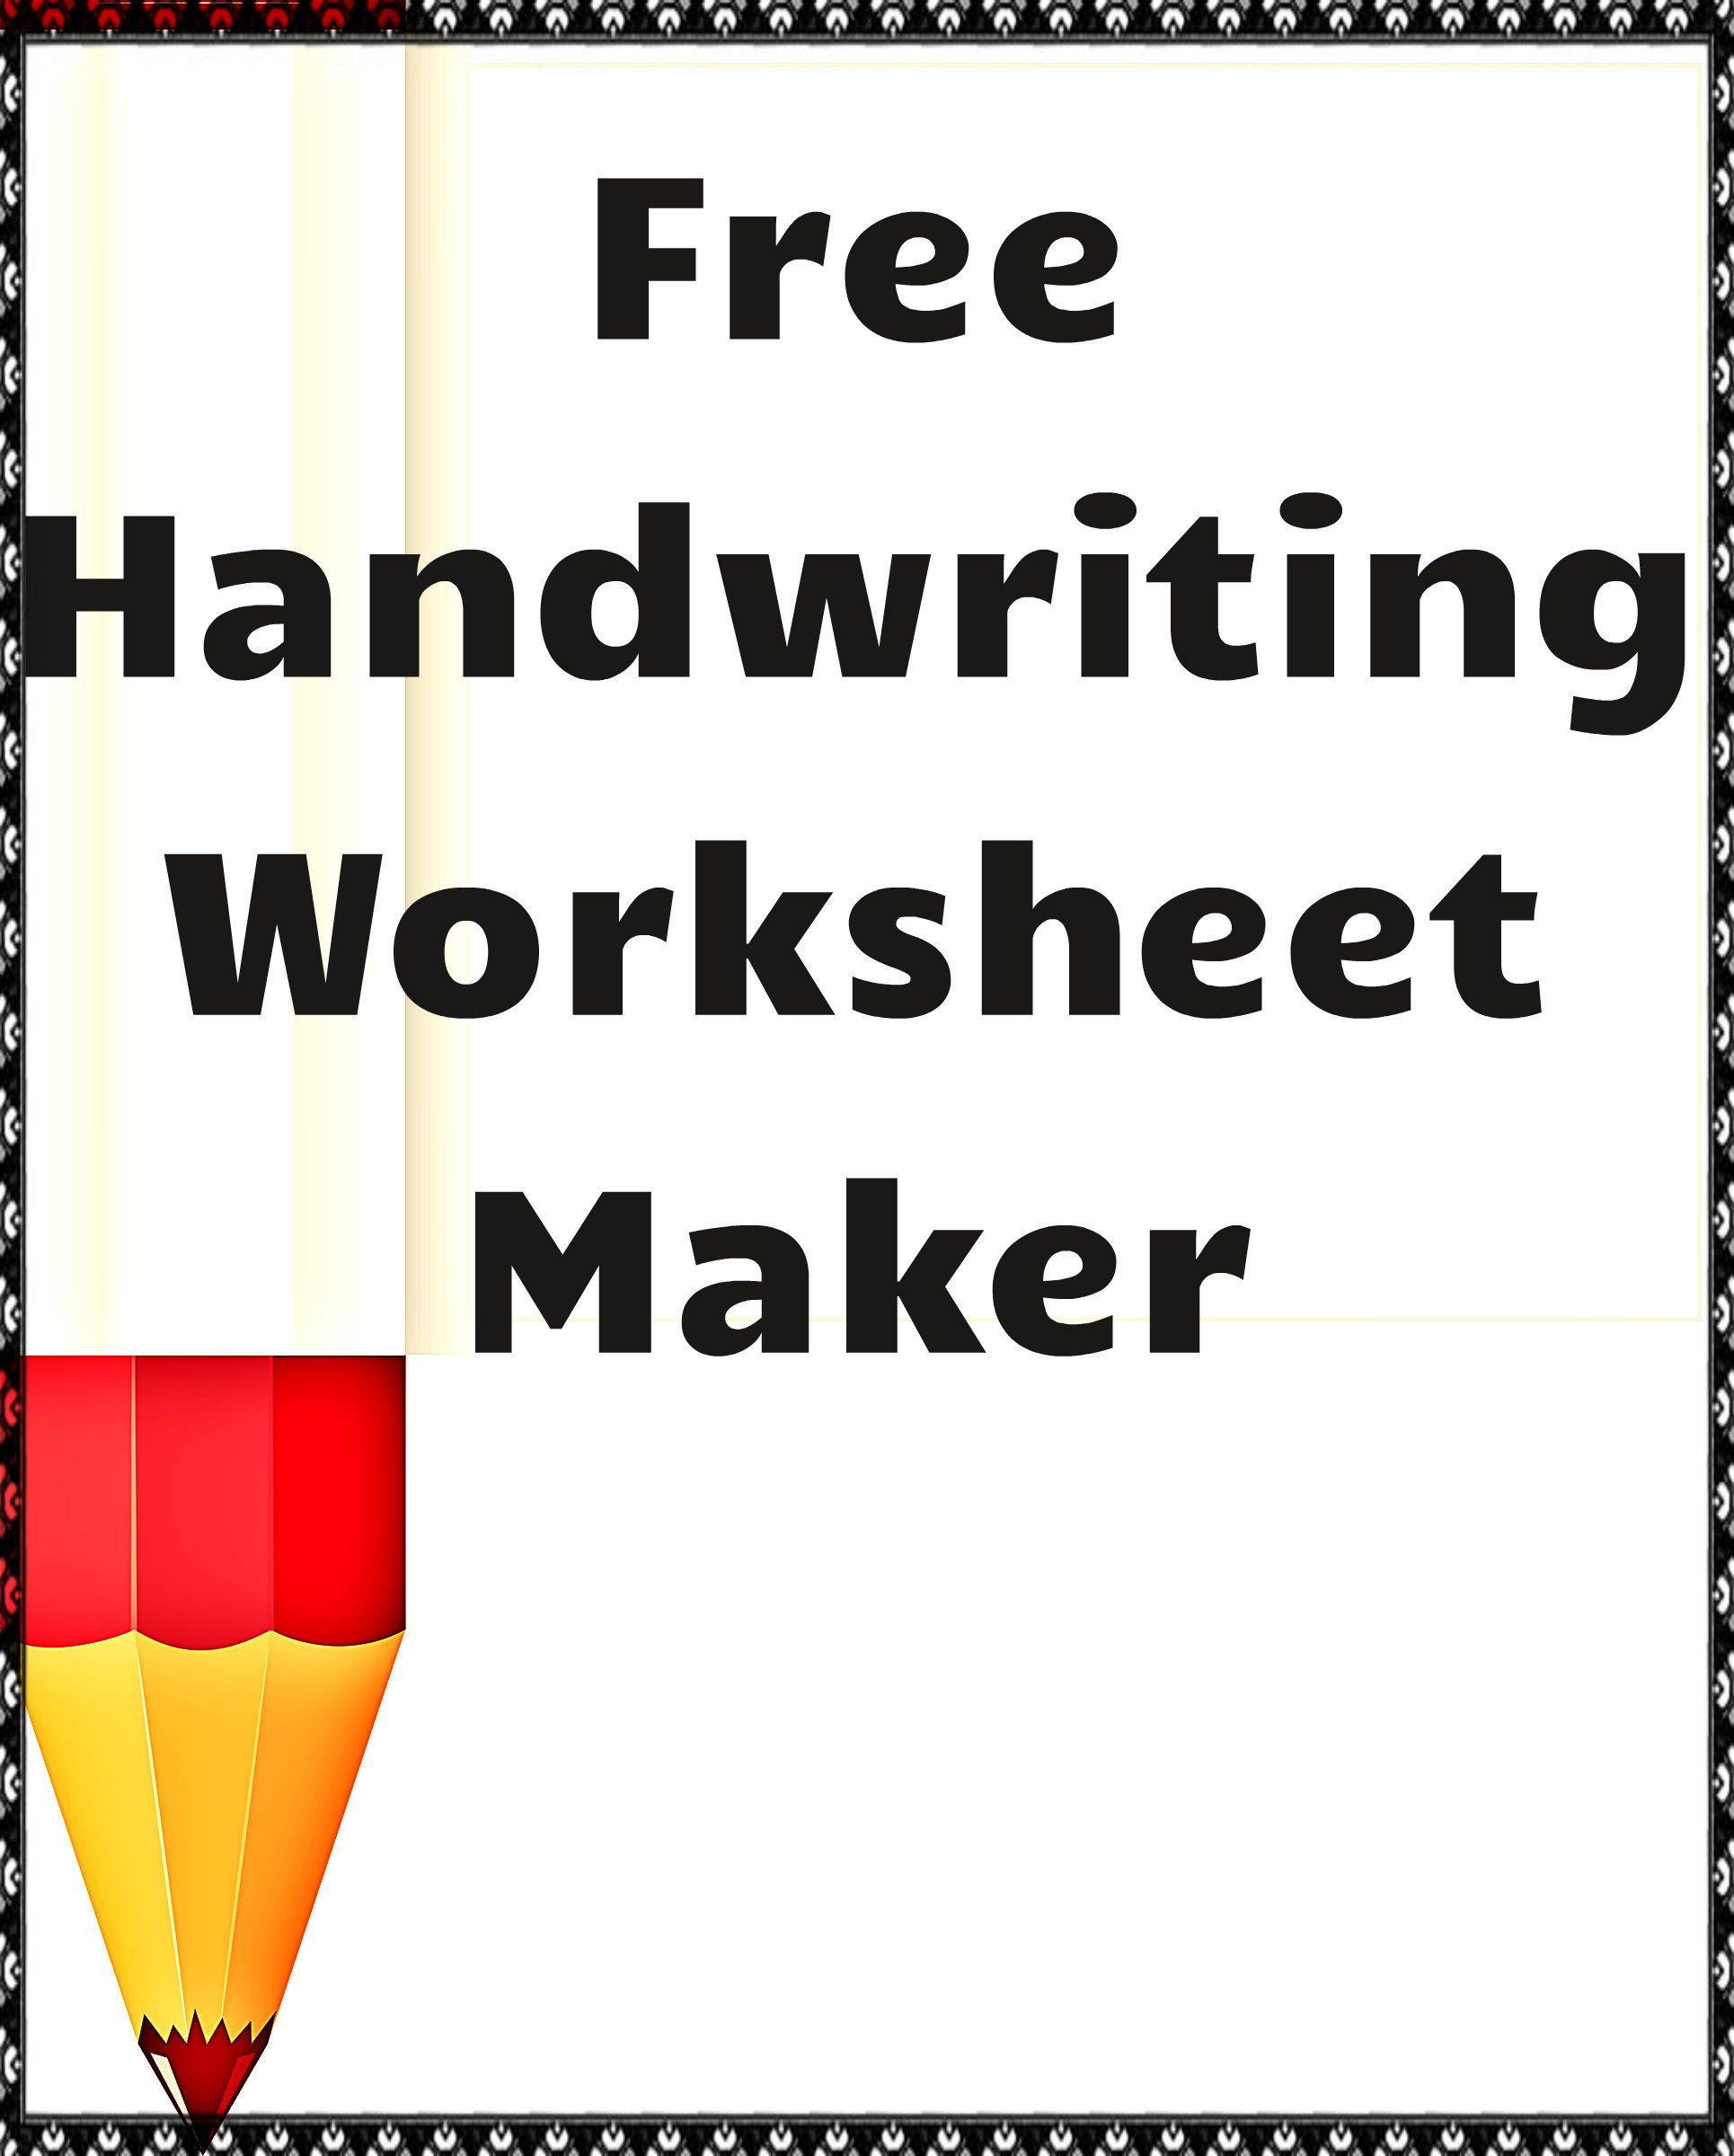 Handwriting Worksheet Creator